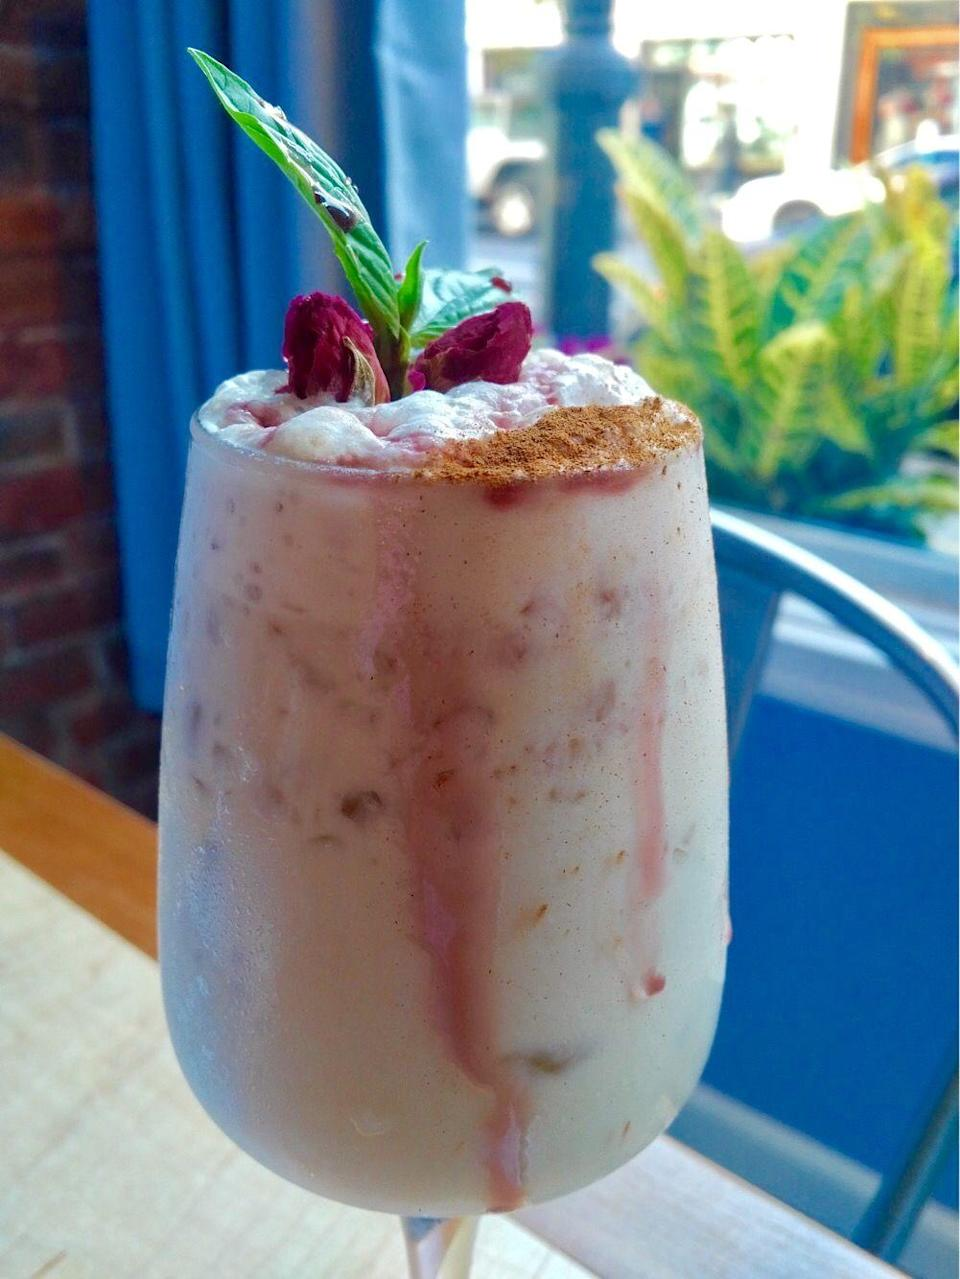 """<p><strong>Ingredients</strong><br>1.5 oz Bailey's<br>1 oz Woodford Reserve Bourbon<br>1 oz eggnog<br>1 egg white<br>Nutmeg and cinnamon to garnish<br>Grenadine (optional)<br>Crushed ice</p><p><strong>Instructions</strong><br>Combine all ingredients and shake vigorously with crushed ice. Pour into large wine glass. Drizzle with raspberry coulis or grenadine. Garnish with grated nutmeg and cinnamon and miniature rose buds. </p><p><em>From <a href=""""http://auntjakesnyc.com/"""" rel=""""nofollow noopener"""" target=""""_blank"""" data-ylk=""""slk:Aunt Jake's"""" class=""""link rapid-noclick-resp"""">Aunt Jake's</a>, New York City</em></p>"""